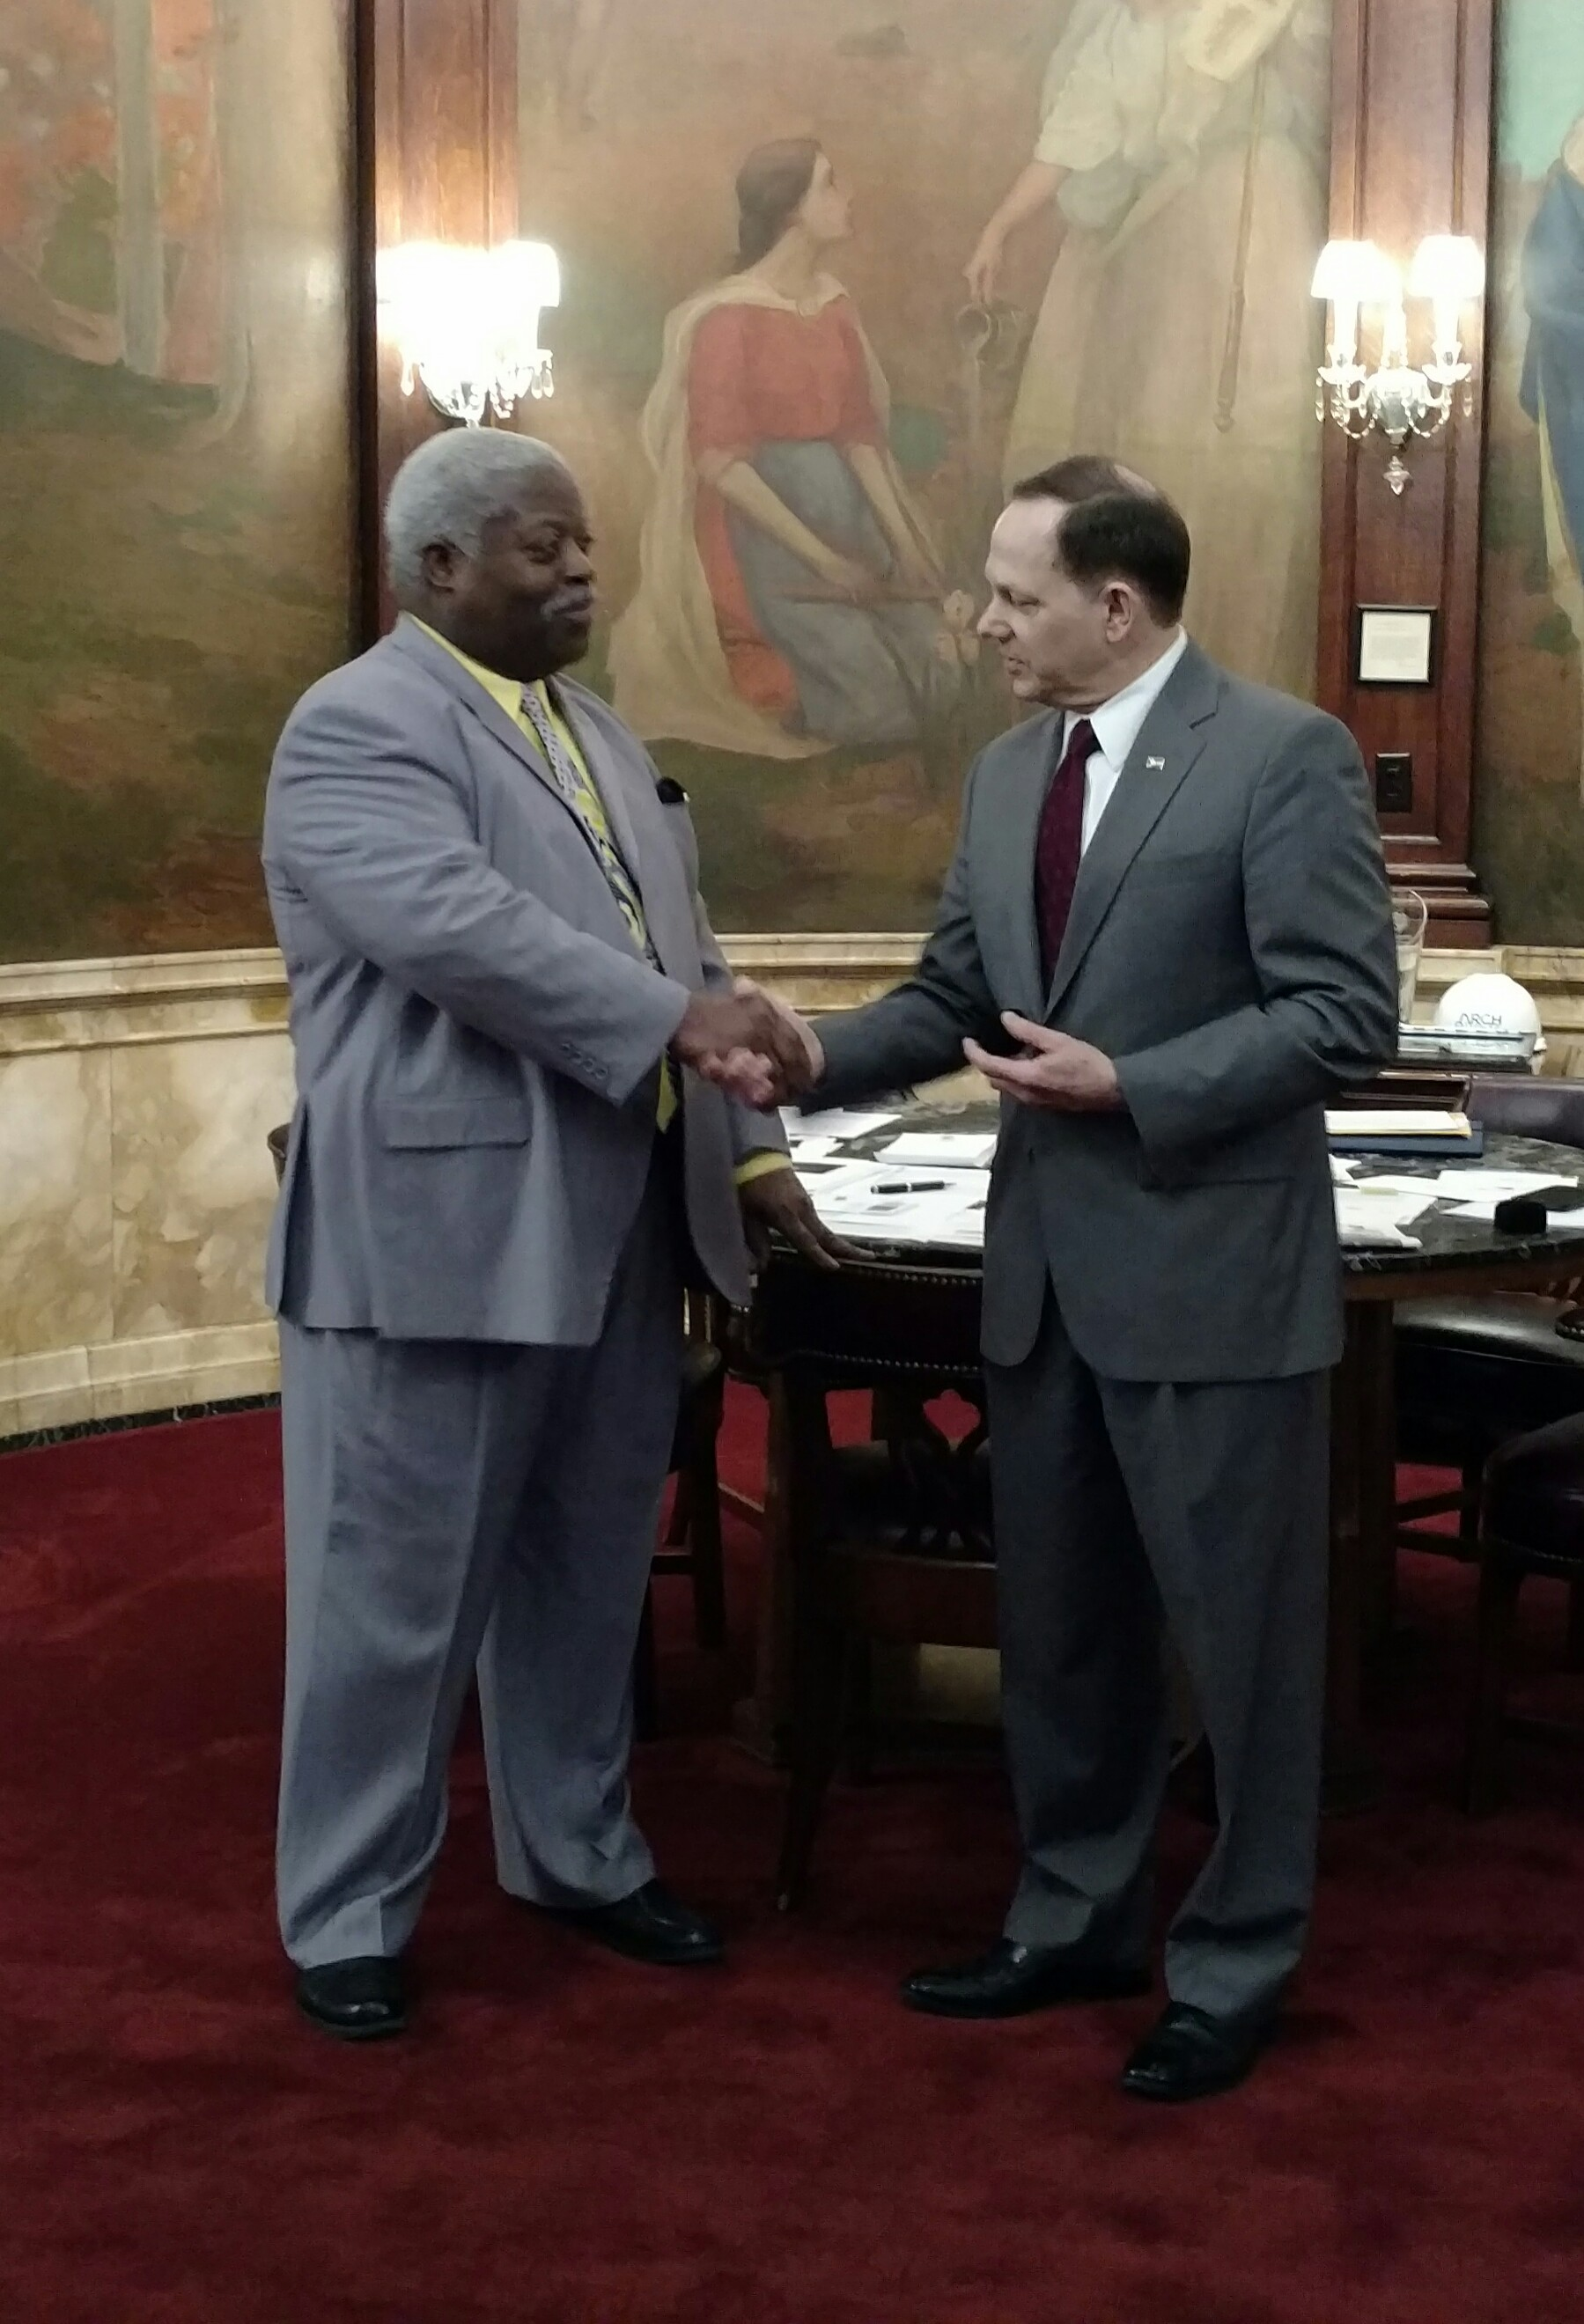 Mayor Francis Slay congratulates Robert Cotton on his 40 years of service with the City.